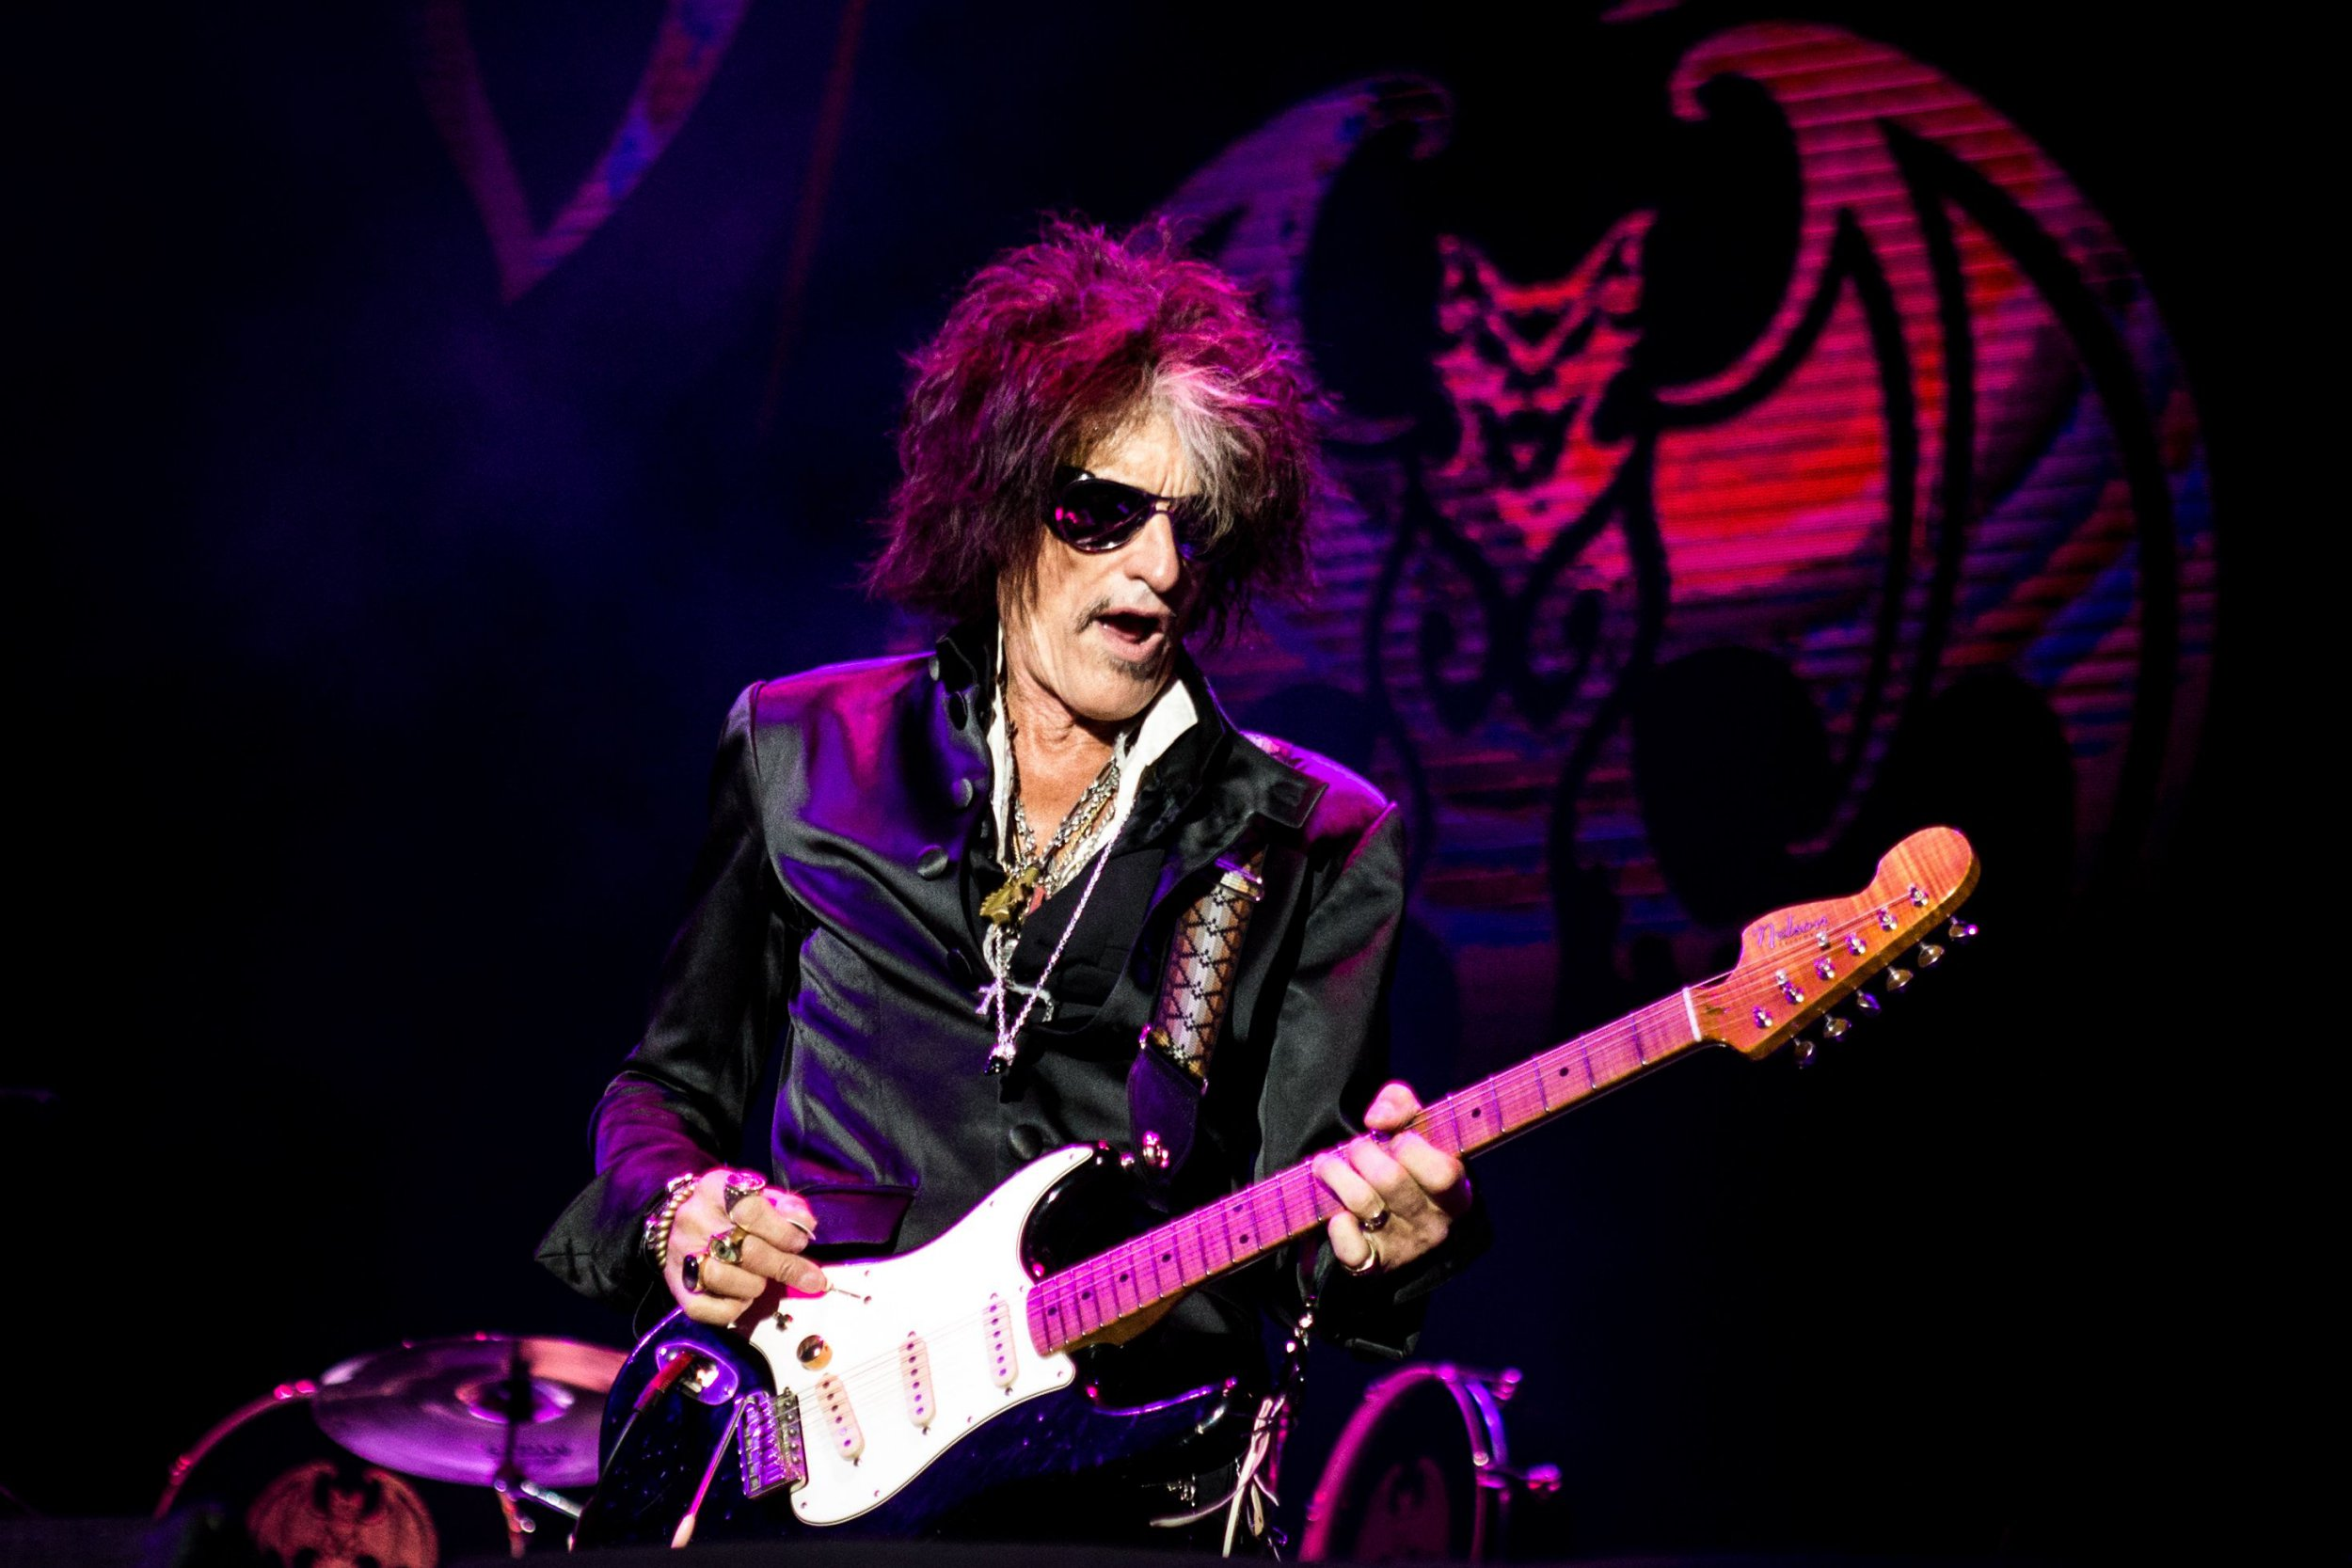 Mandatory Credit: Photo by Roberto Finizio/REX/Shutterstock (9745102c) Hollywood Vampires - Joe Perry Hollywood Vampires in concert at the Lucca Summer Festival, Italy - 07 Jul 2018